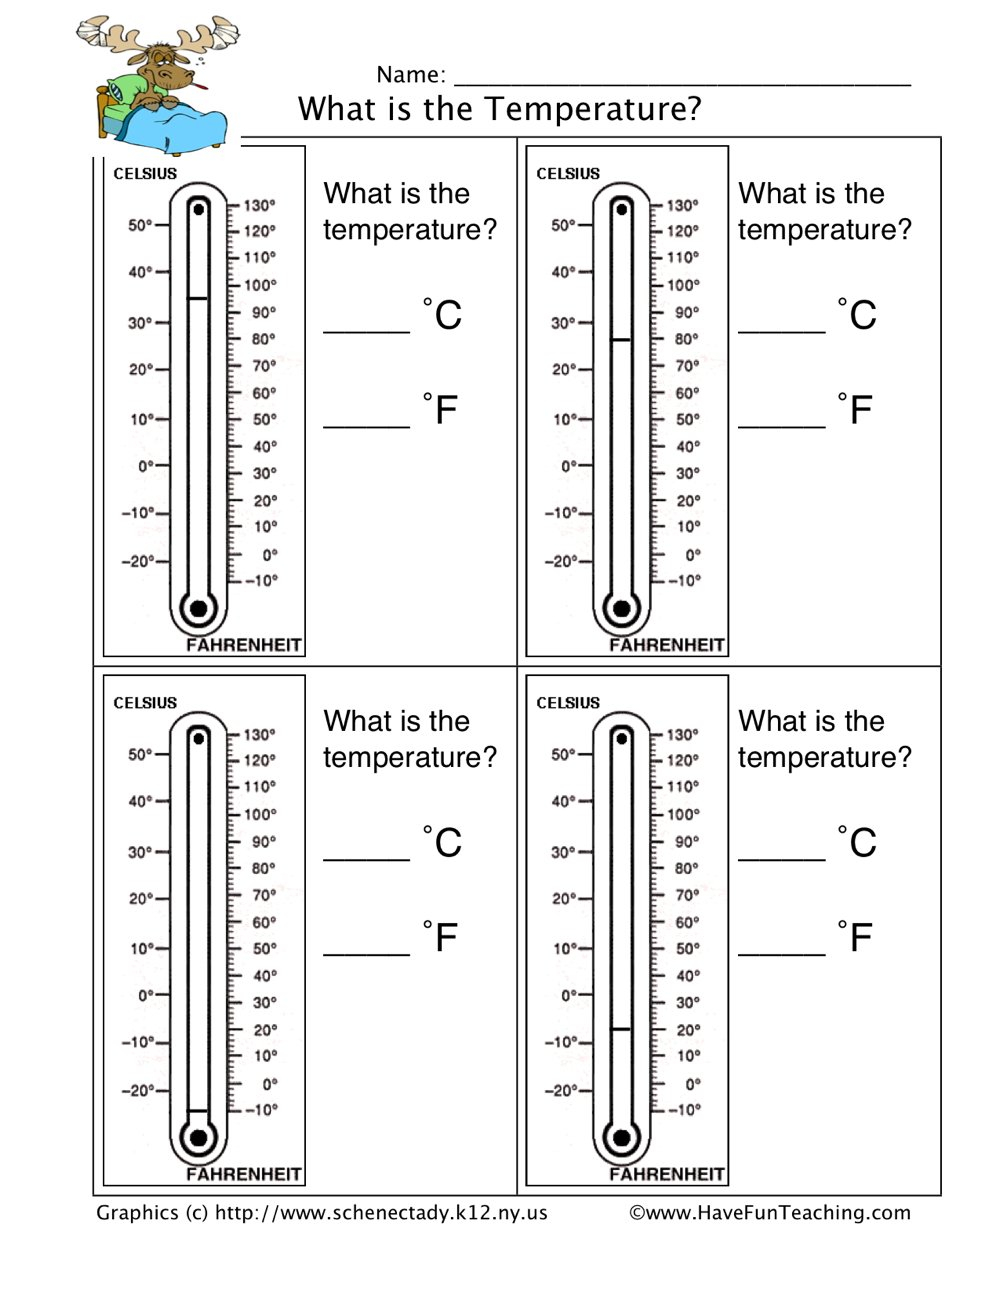 Reading Thermometers Worksheet  Have Fun Teaching Within Reading A Thermometer Worksheet